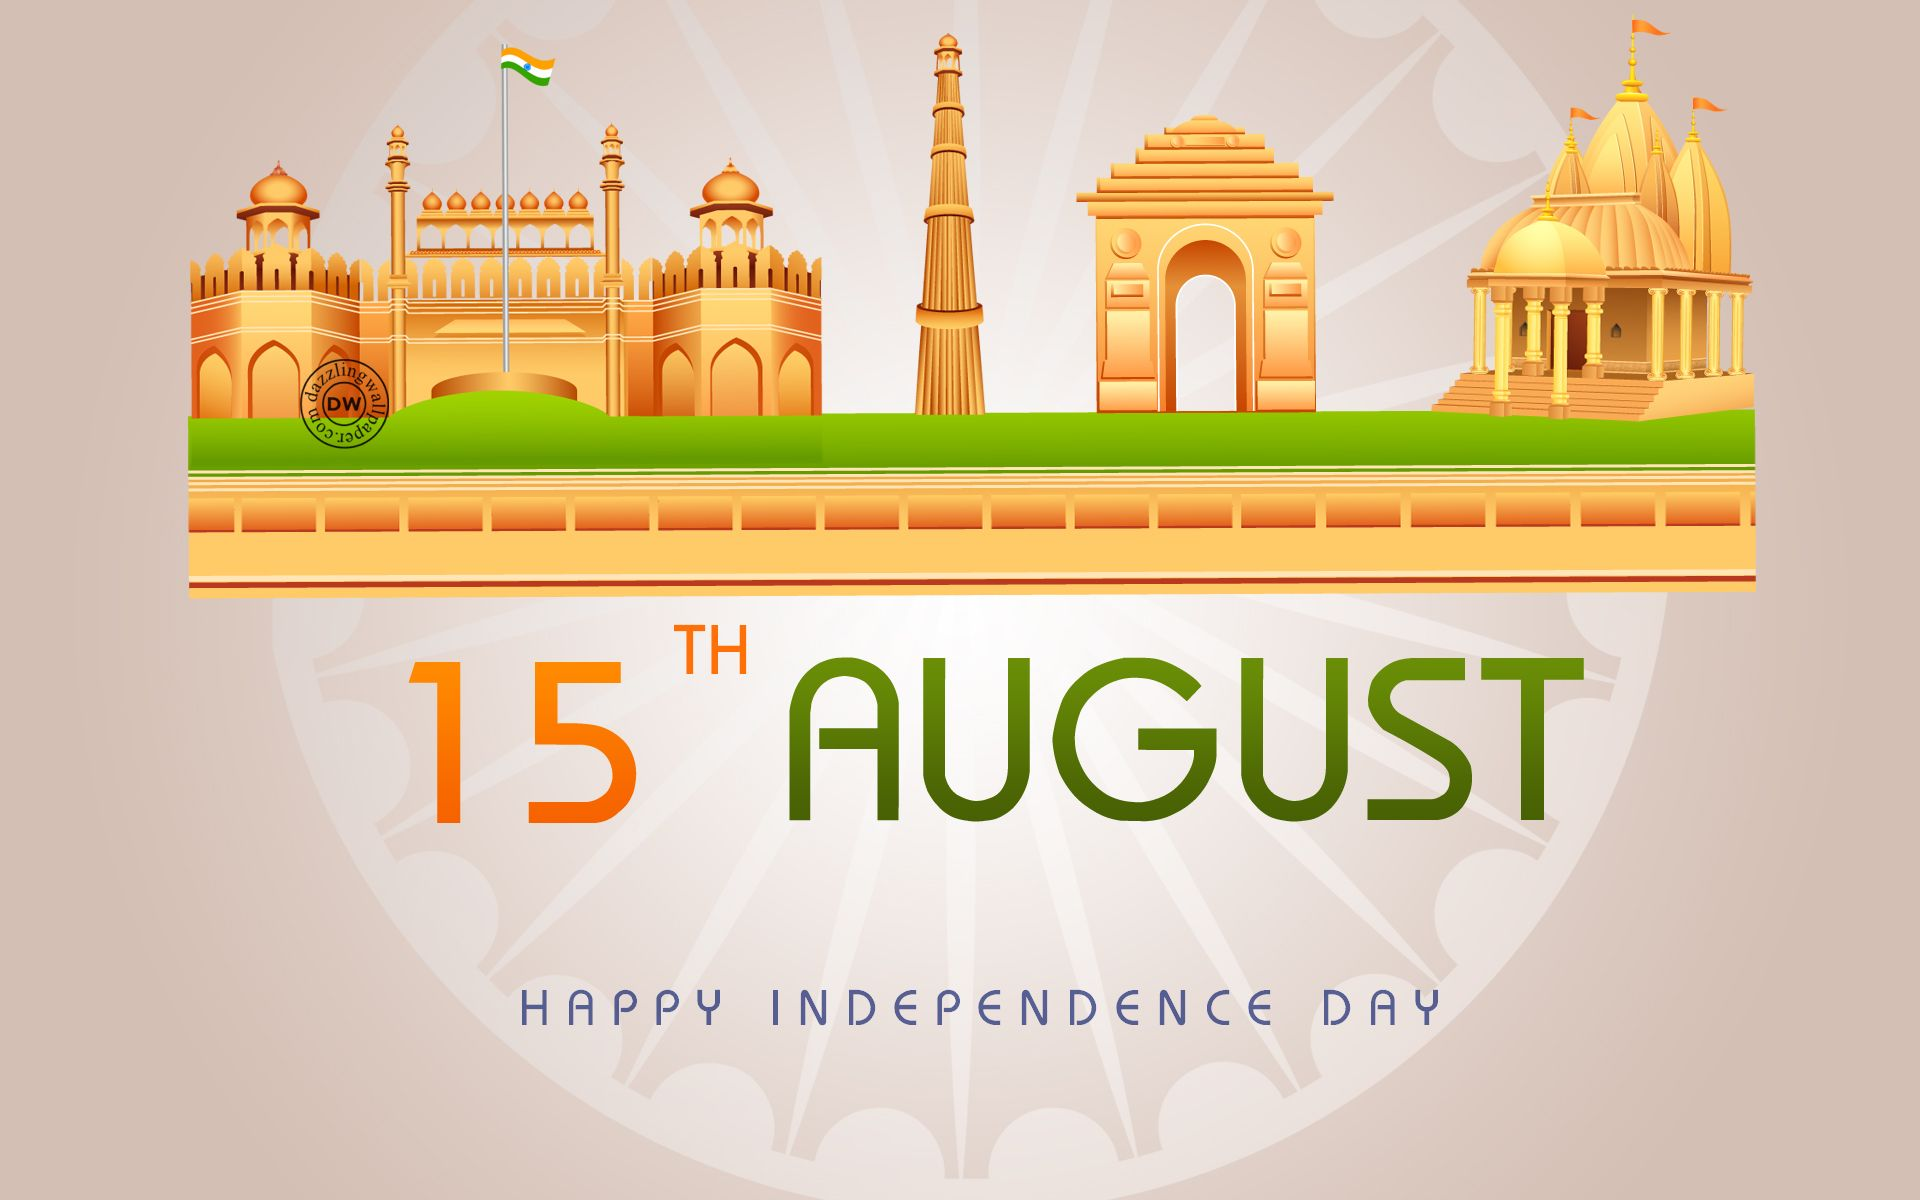 73nd Indian Independence Day Wallpaper Free Download 15 August Independence Day Independence Day Wallpaper Independence Day Hd Wallpaper